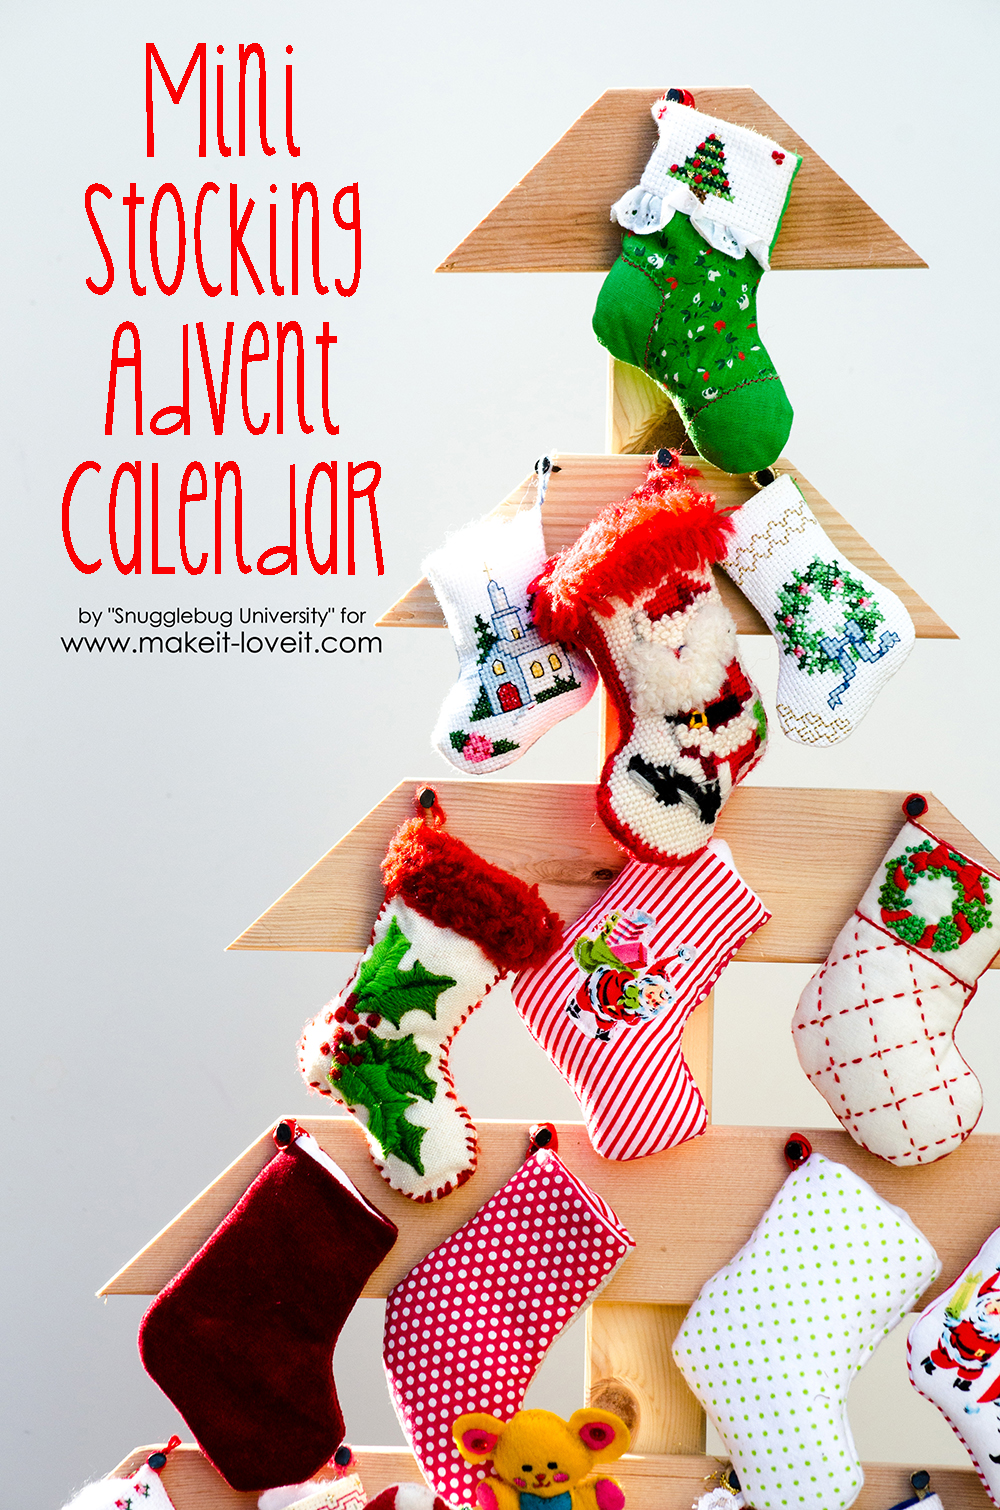 DIY Mini Stocking Advent Calendar | via www.makeit-loveit.com